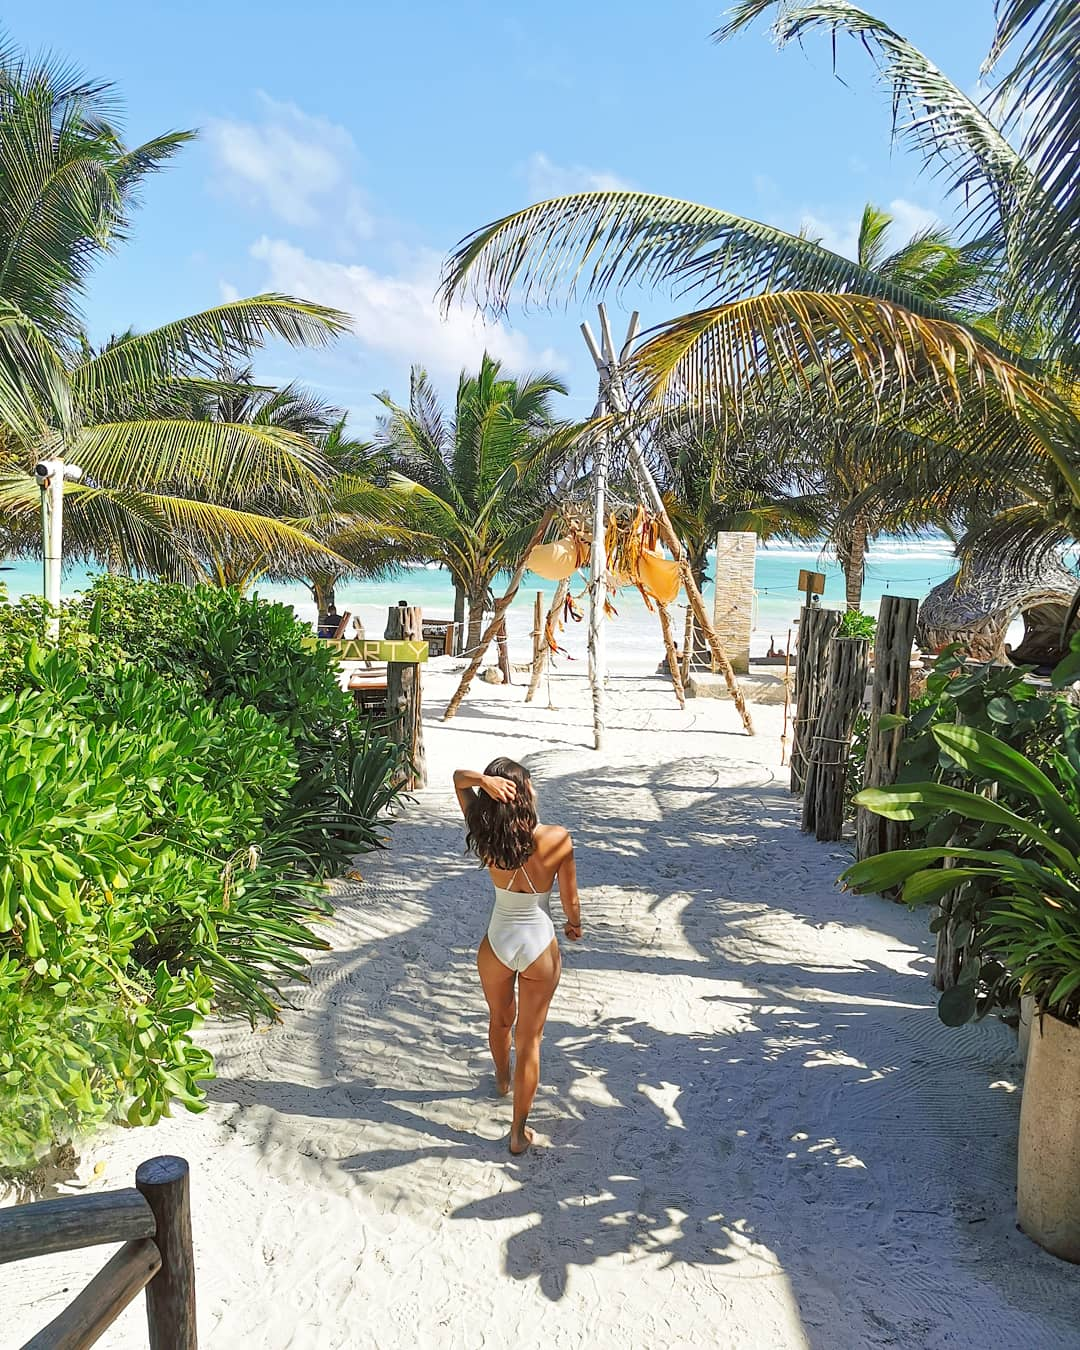 Yucatan Rundreise Highlights Tulum Mia